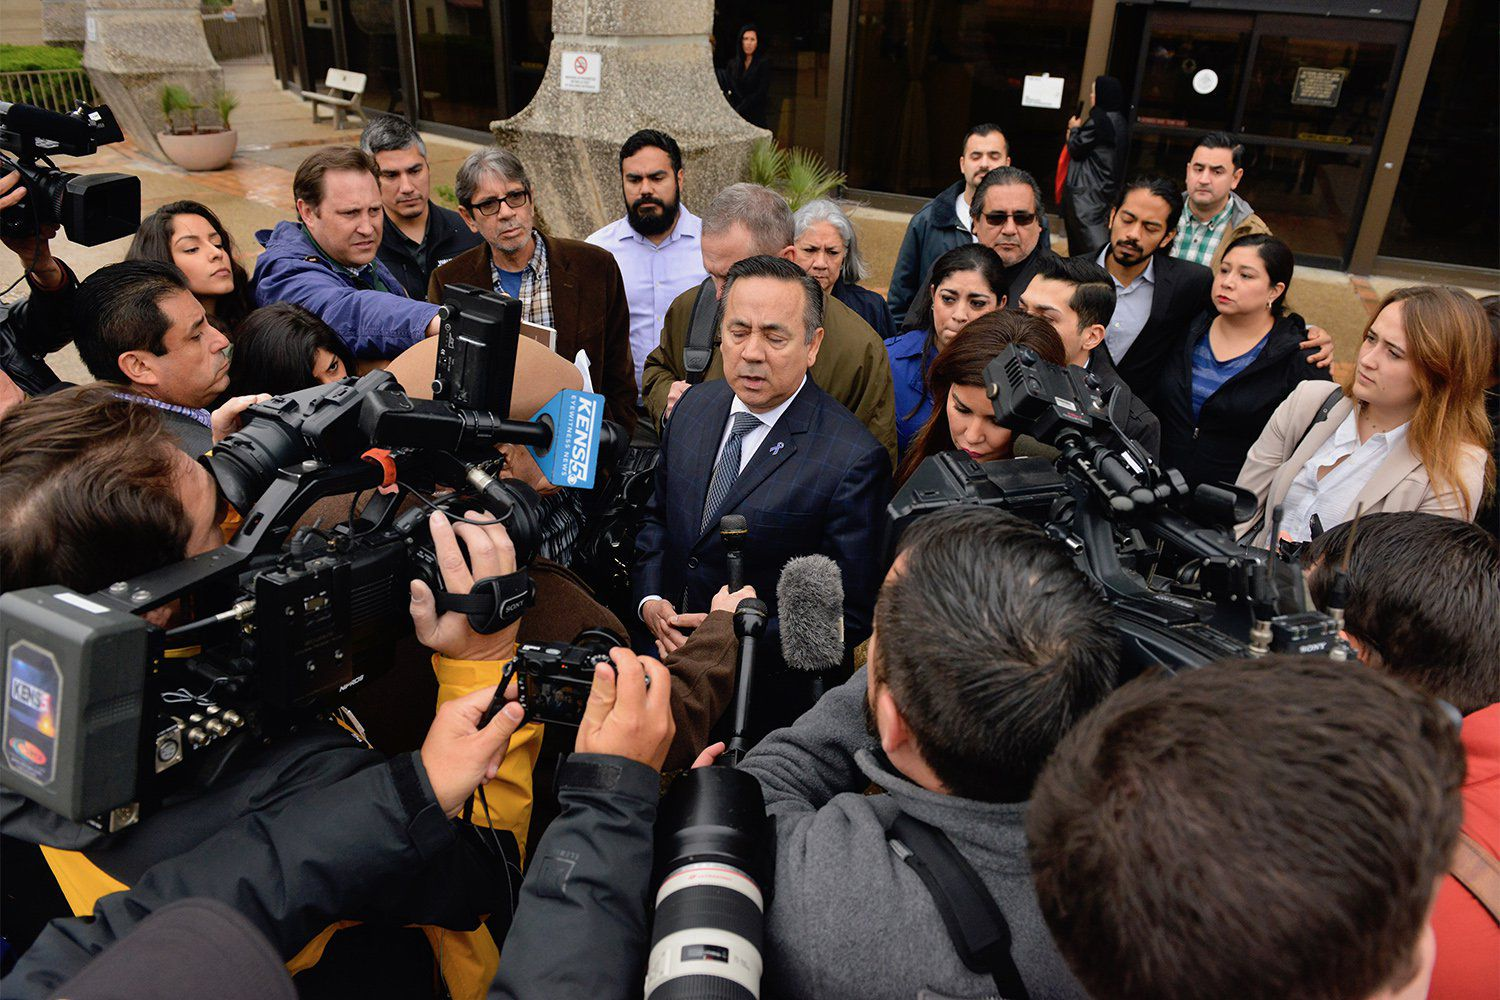 State Sen. Carlos Uresti, D-San Antonio, speaks at a press conference outside the federal courthouse in San Antonio after being foundguilty of multiple felonies, on Feb. 22, 2018.